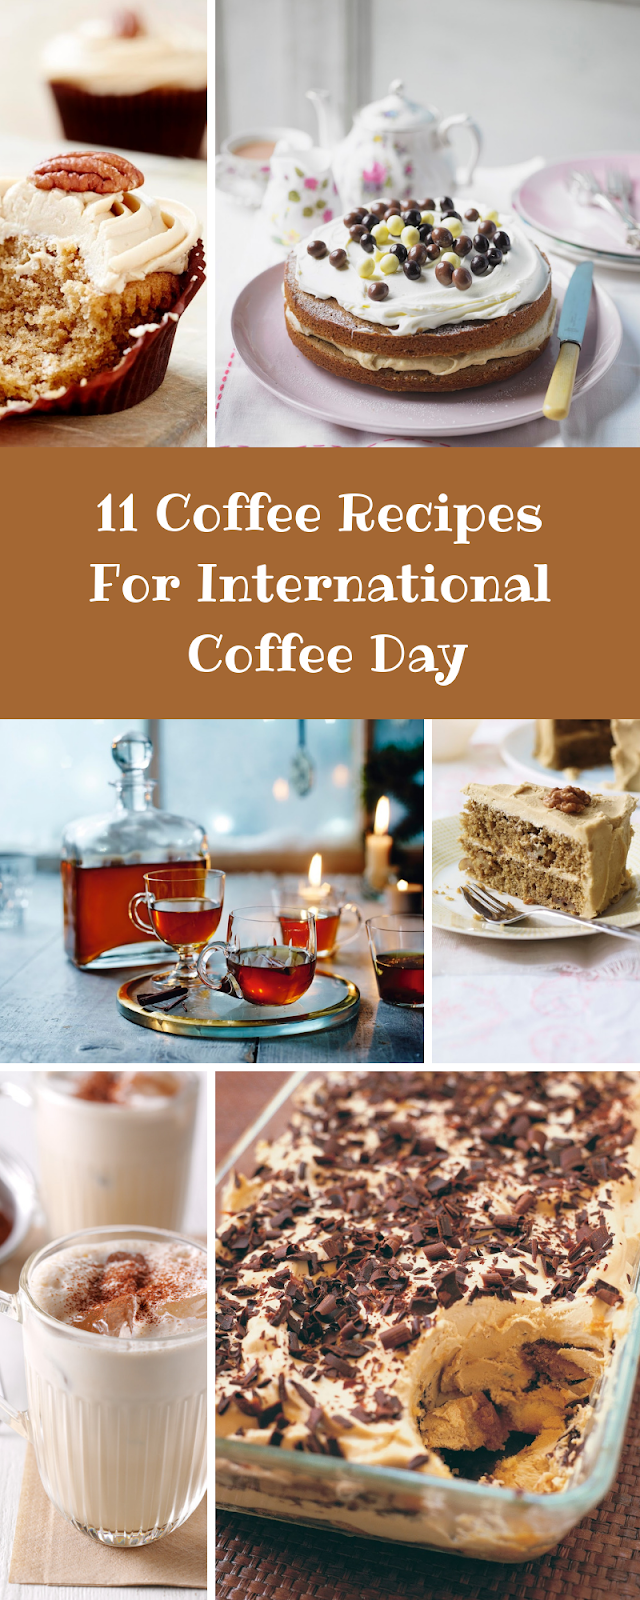 11 Coffee Recipes For International Coffee Day